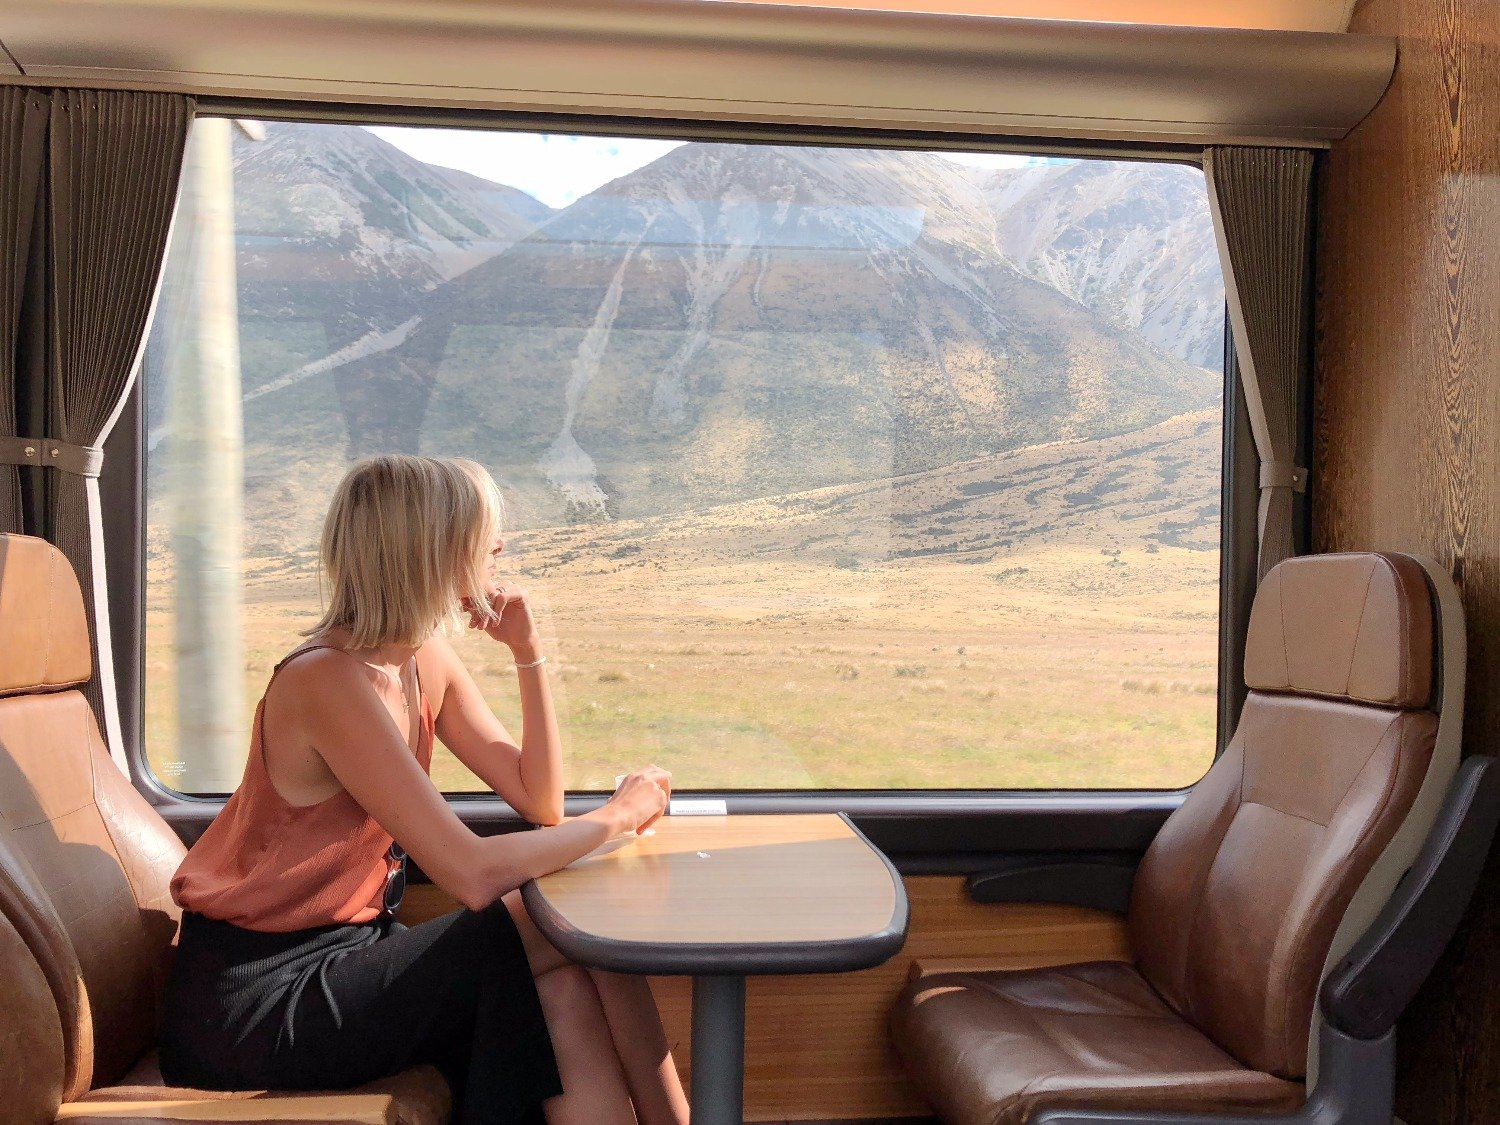 The TranzAlpine Train | Tickets, Prices and How To Book Your